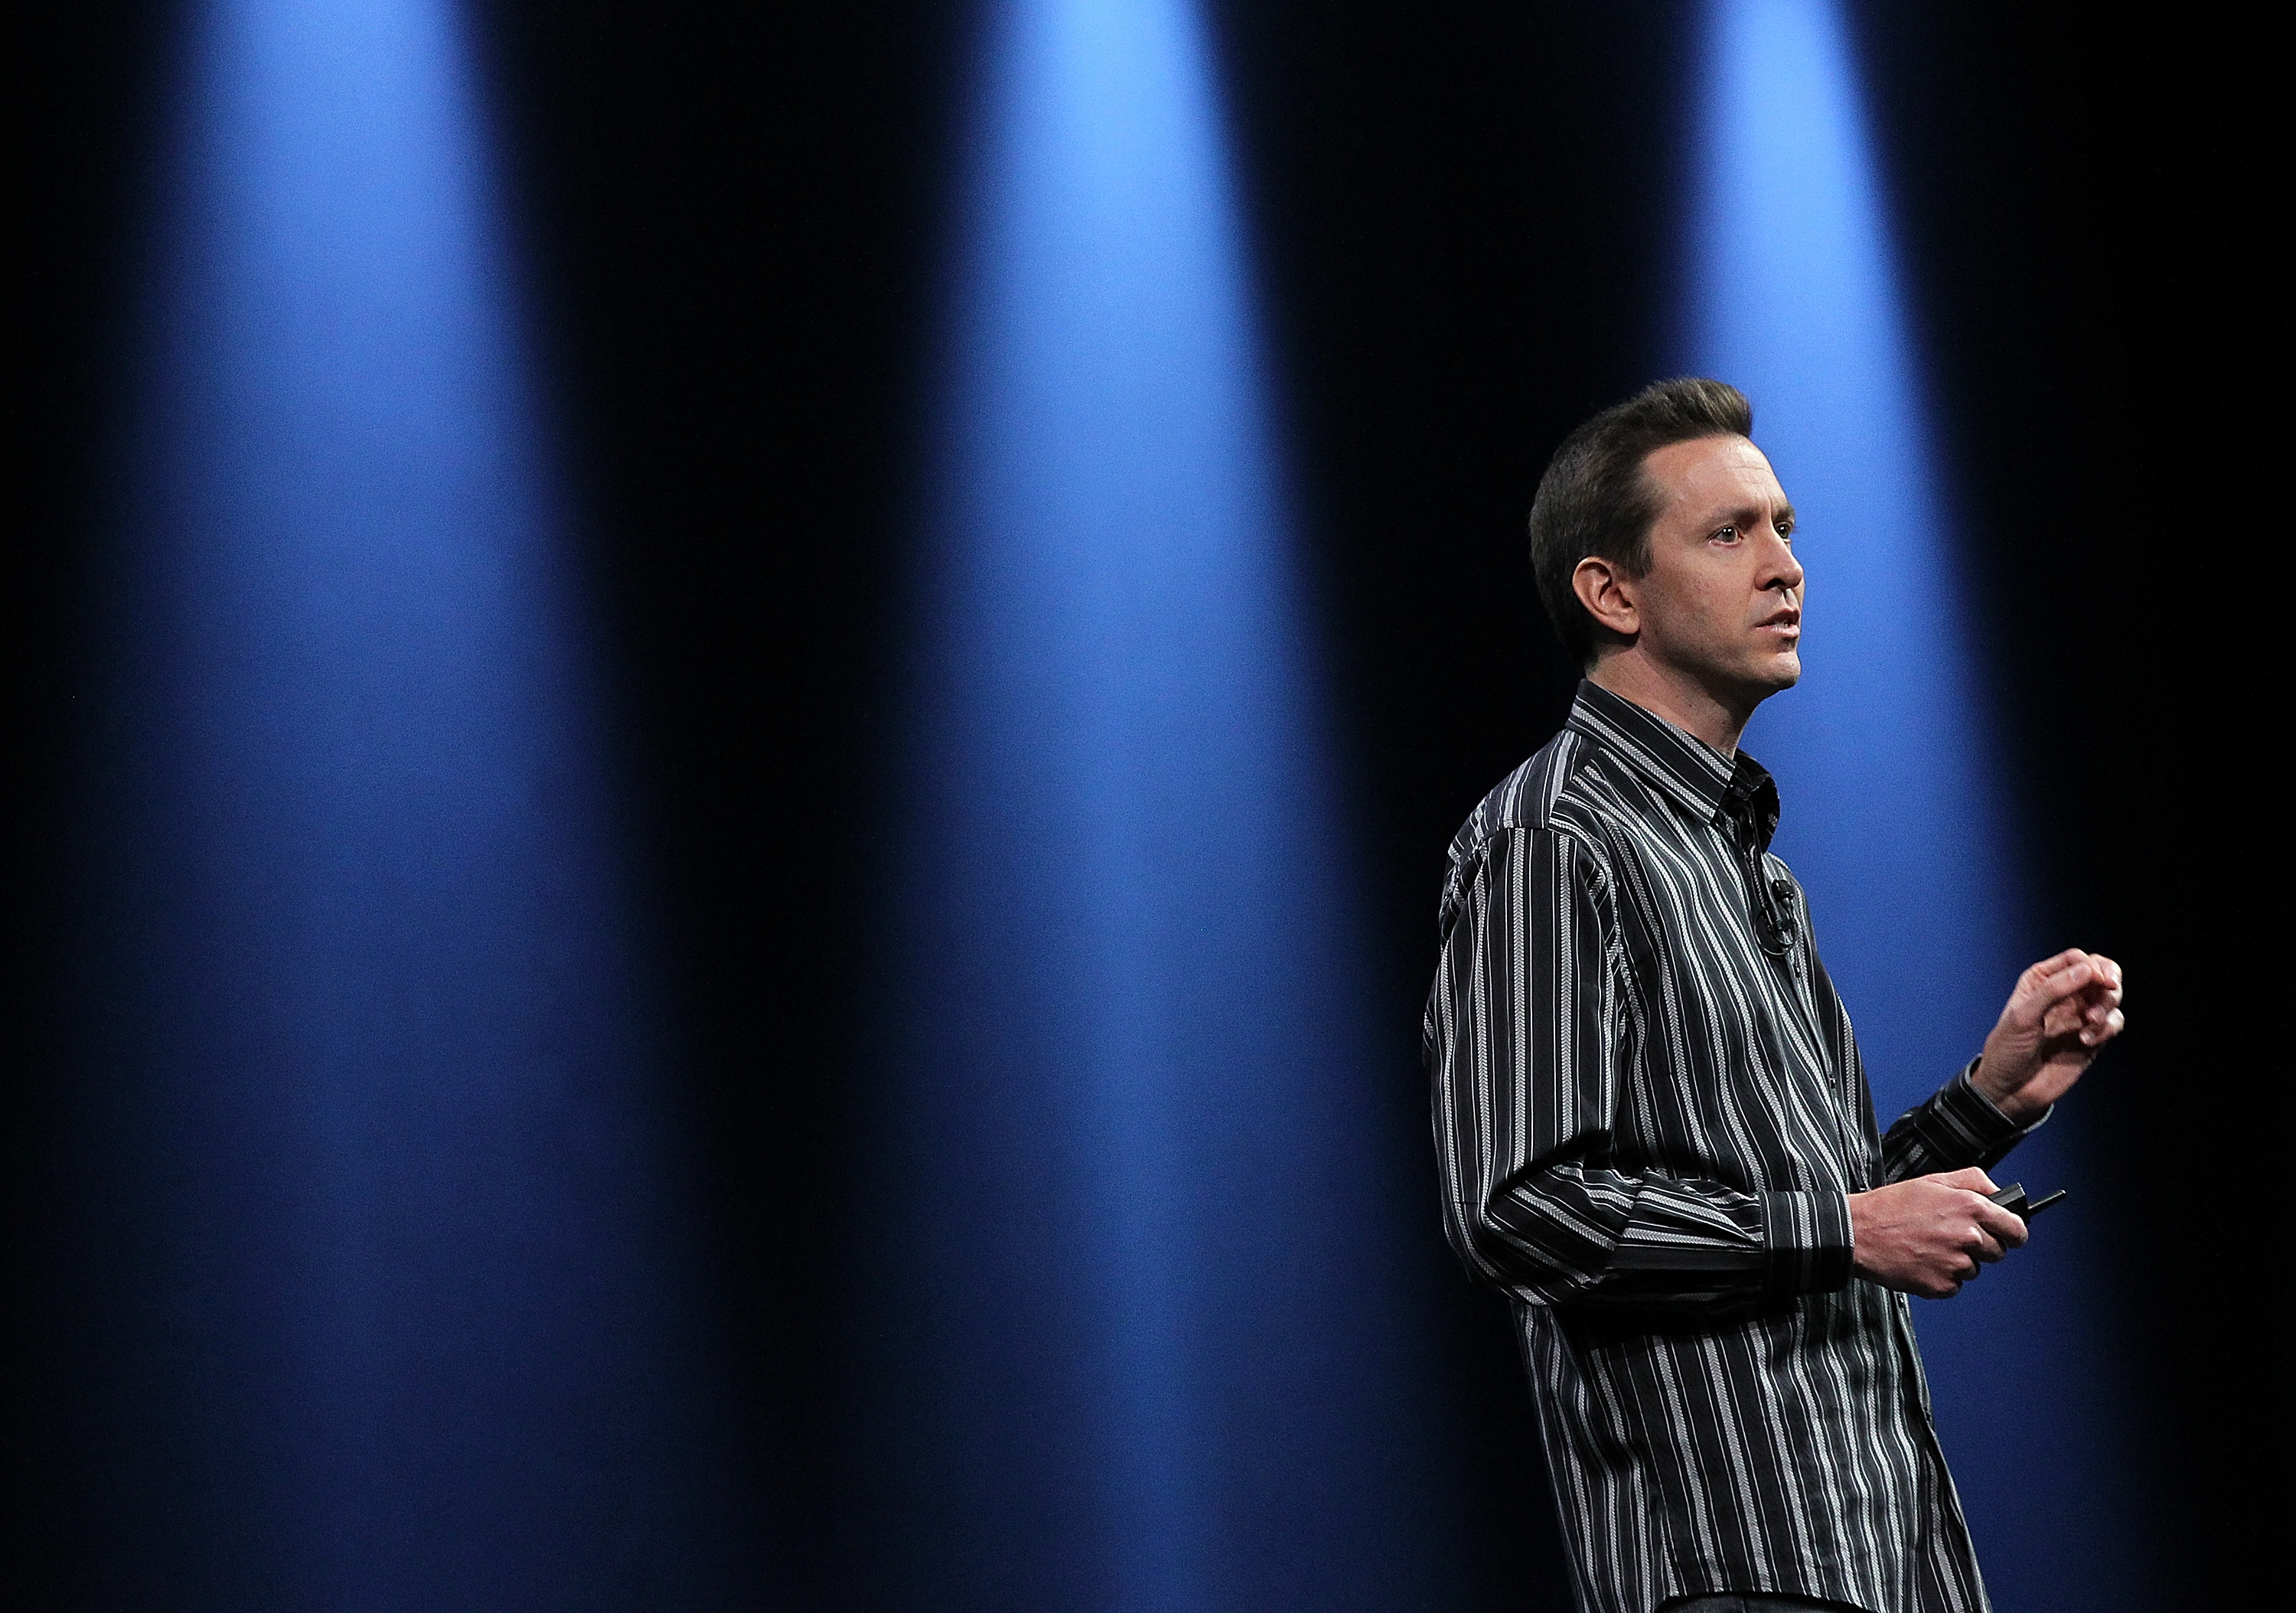 Apple's Scott Forstall to leave company in 2013. Browett out as Cue, Ive, Fedherighi take on new roles ...